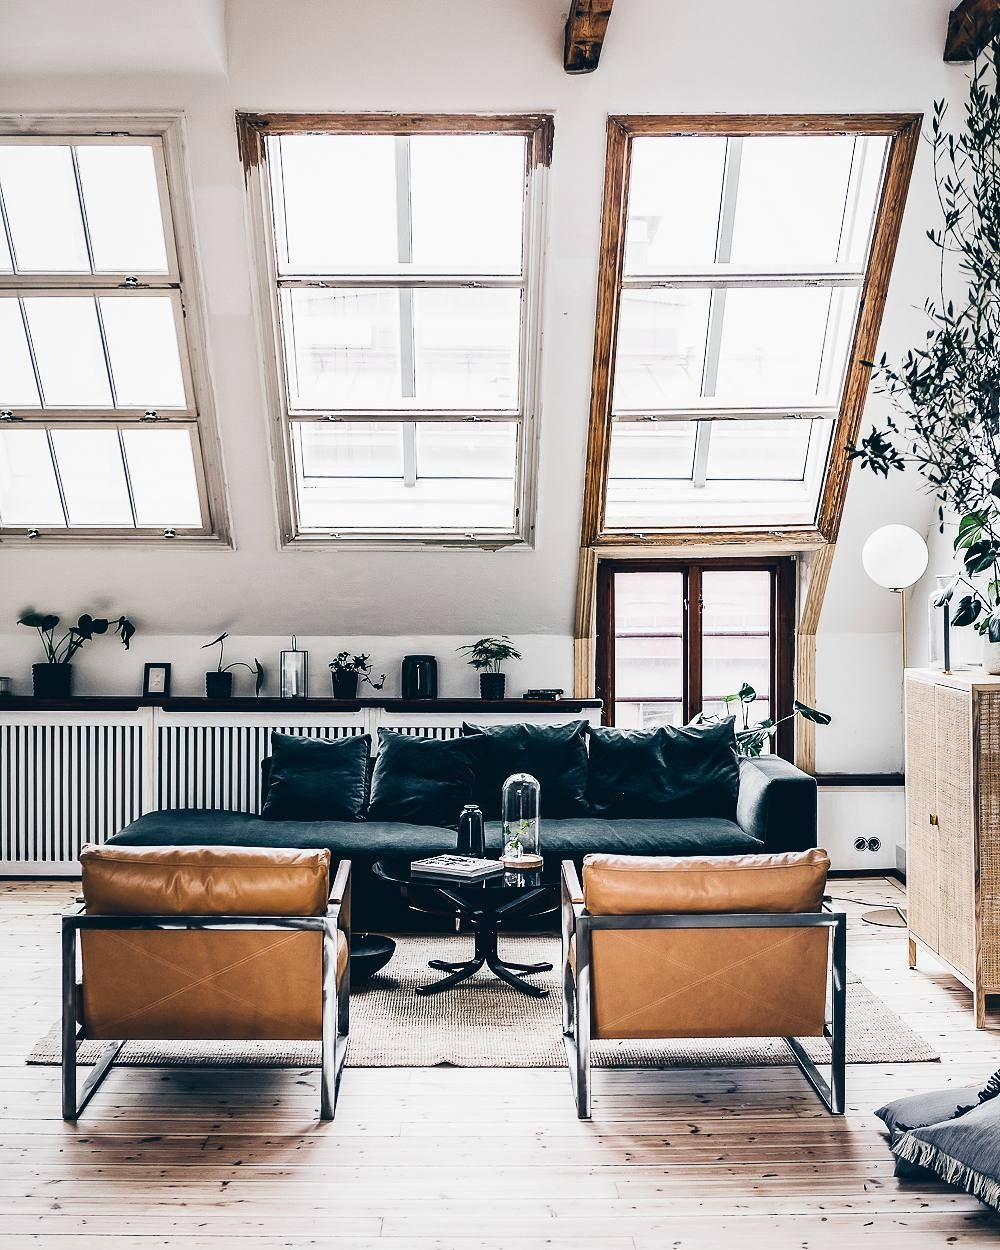 1312 Mentions J'aime 4 Commentaires  Man Of Many  Manofmany Classy Interior Designing Living Room Inspiration Design